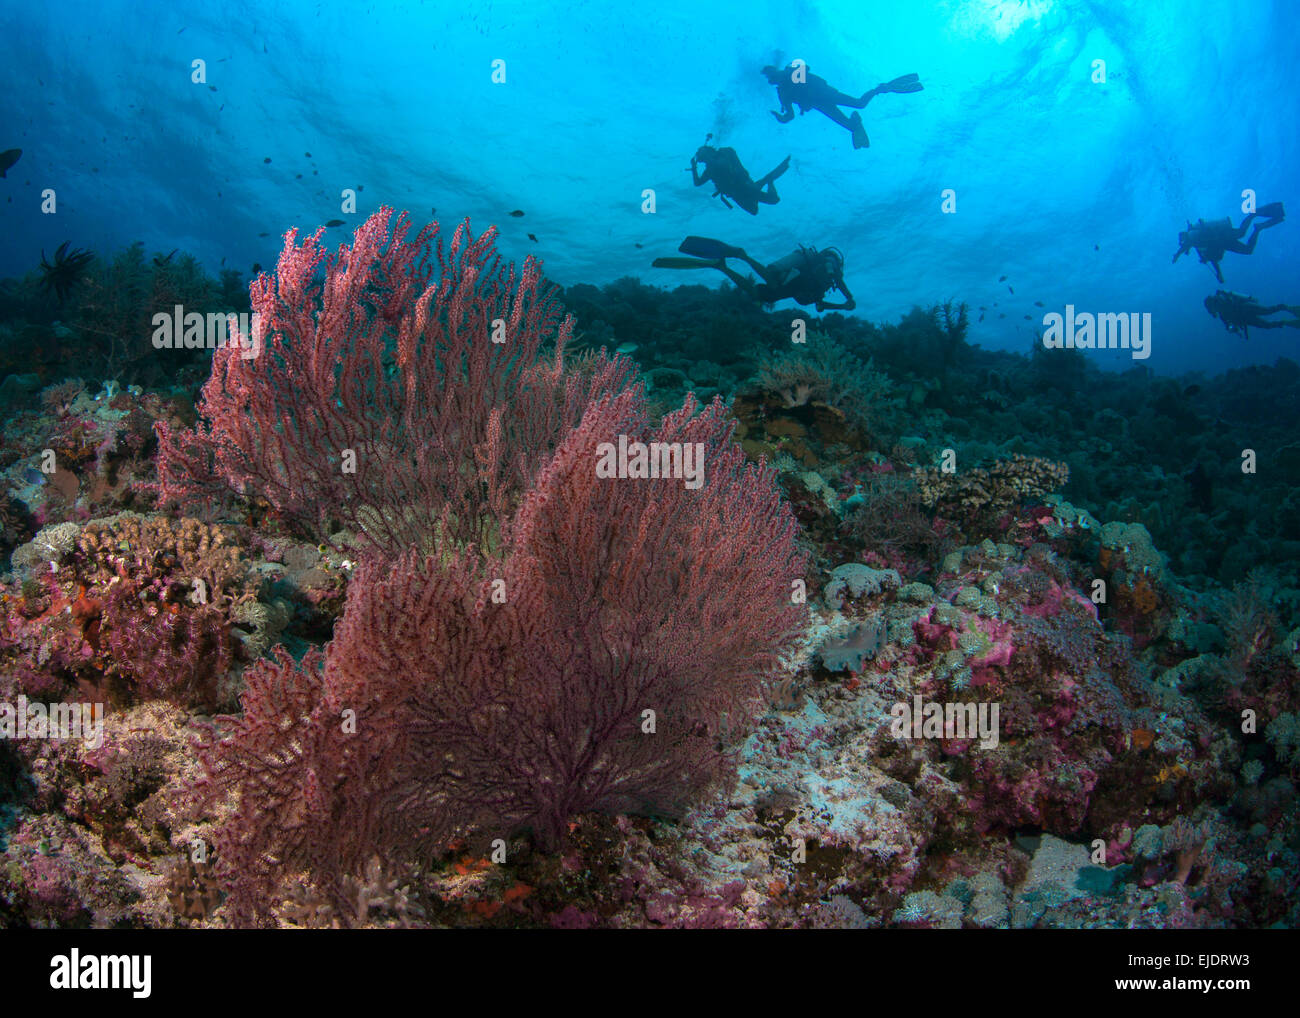 Scuba divers explore reef with red sea fans. Spratly Islands, South China Sea. - Stock Image